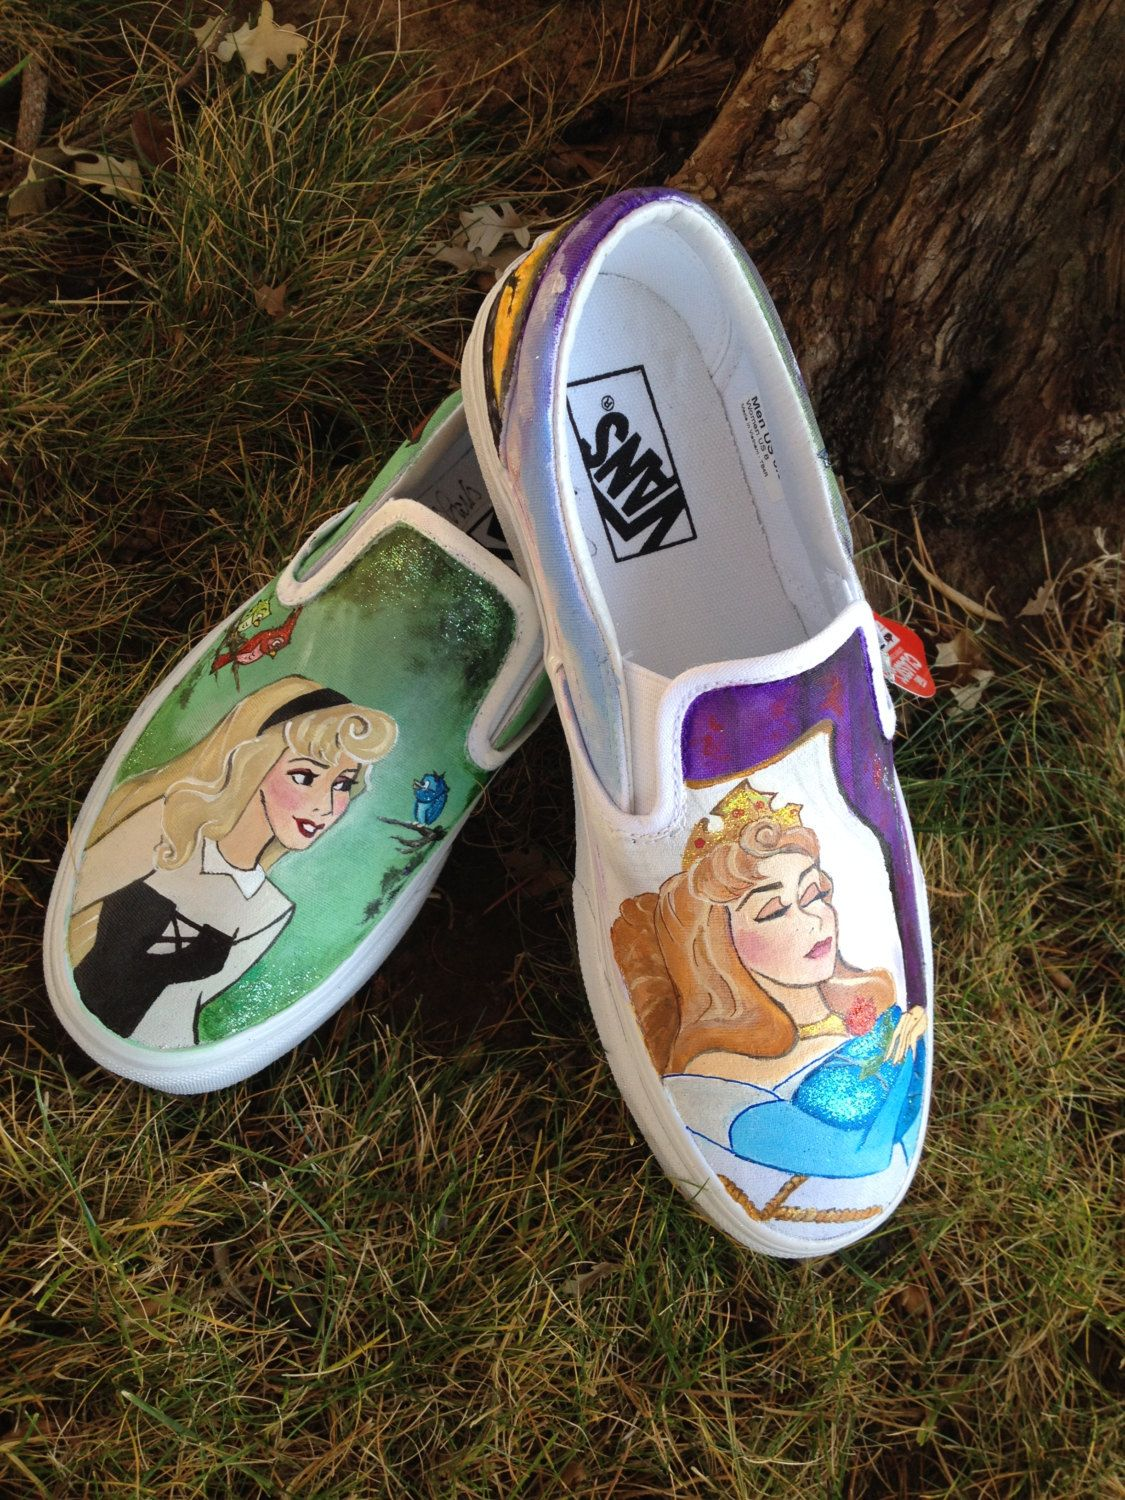 Sleeping Beauty Painted Shoes/ Custom Shoes by